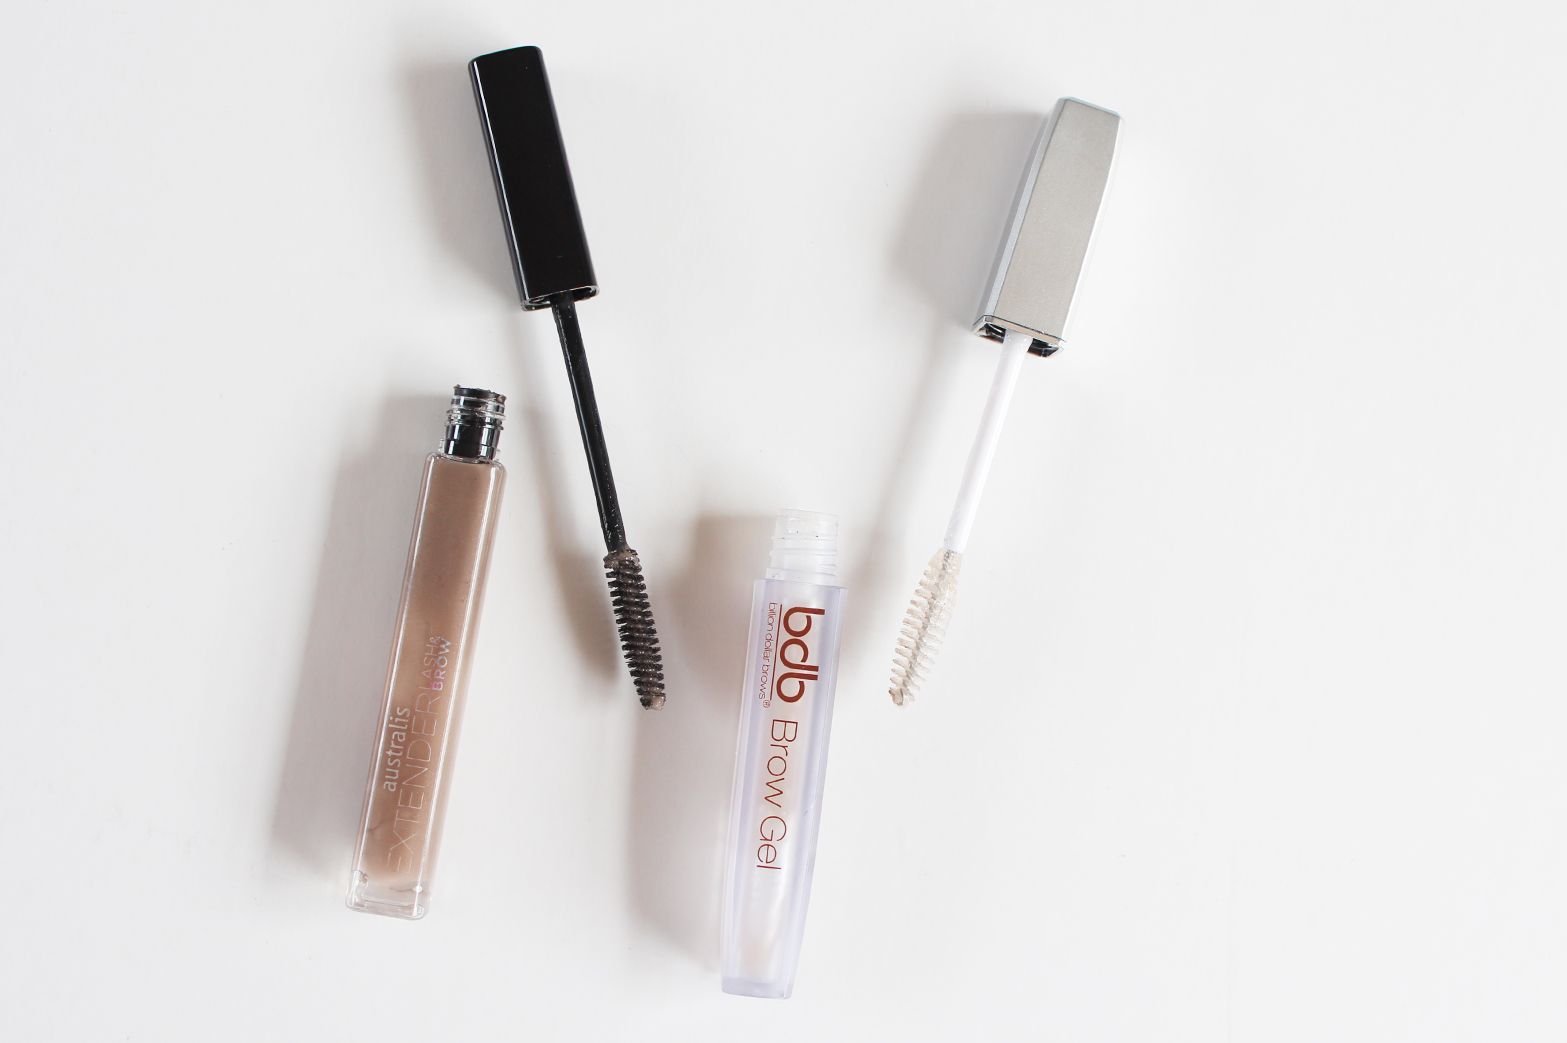 TOP 5 BROW GELS - Benefit, Blinc, Maybelline, Australis, Billion Dollar Brows - CassandraMyee